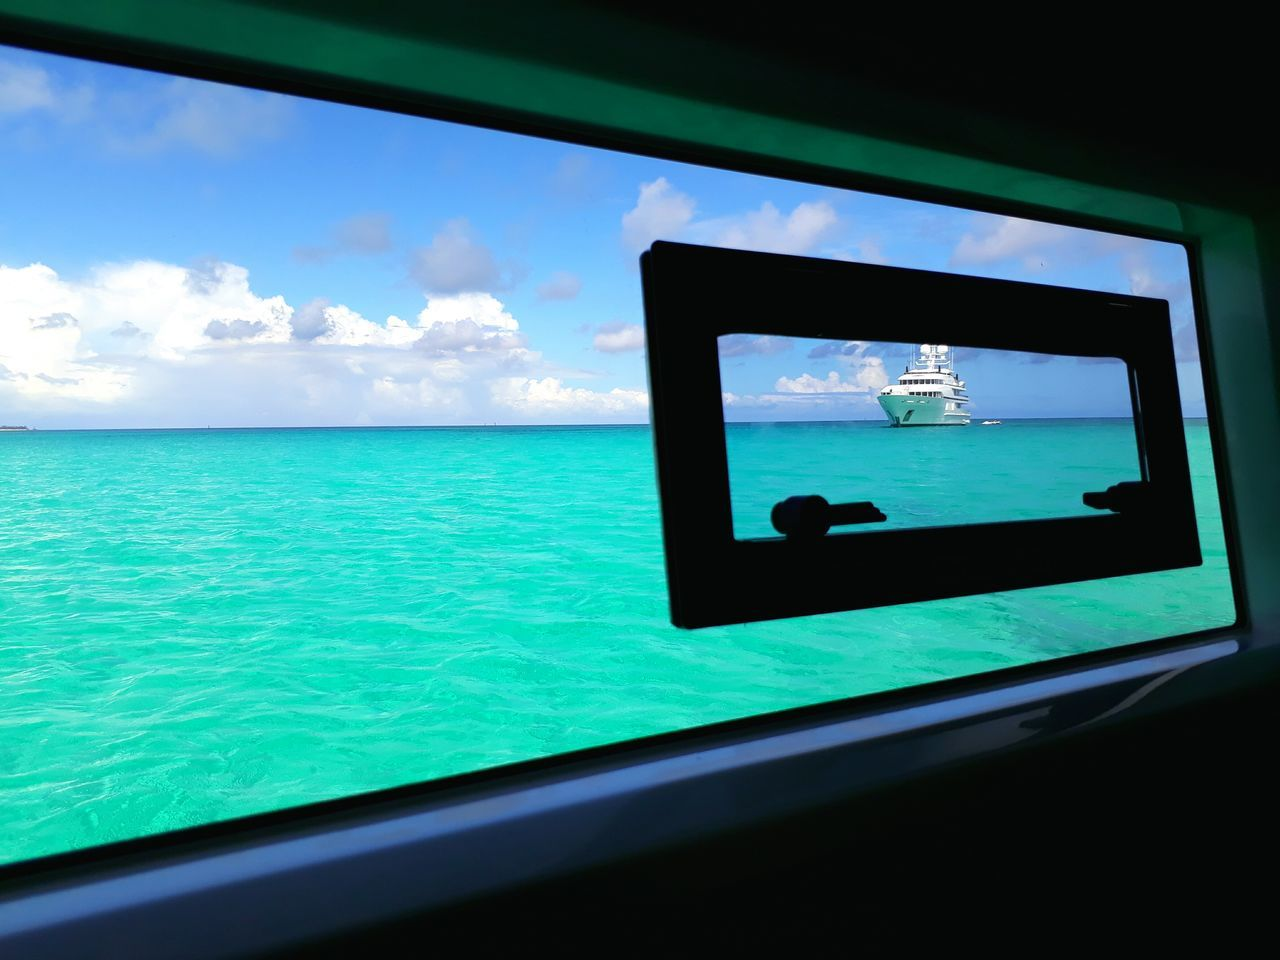 technology, sea, wireless technology, photography themes, photographing, communication, window, water, device screen, sky, close-up, indoors, mobile phone, horizon over water, no people, camera - photographic equipment, day, nature, beauty in nature, photo messaging